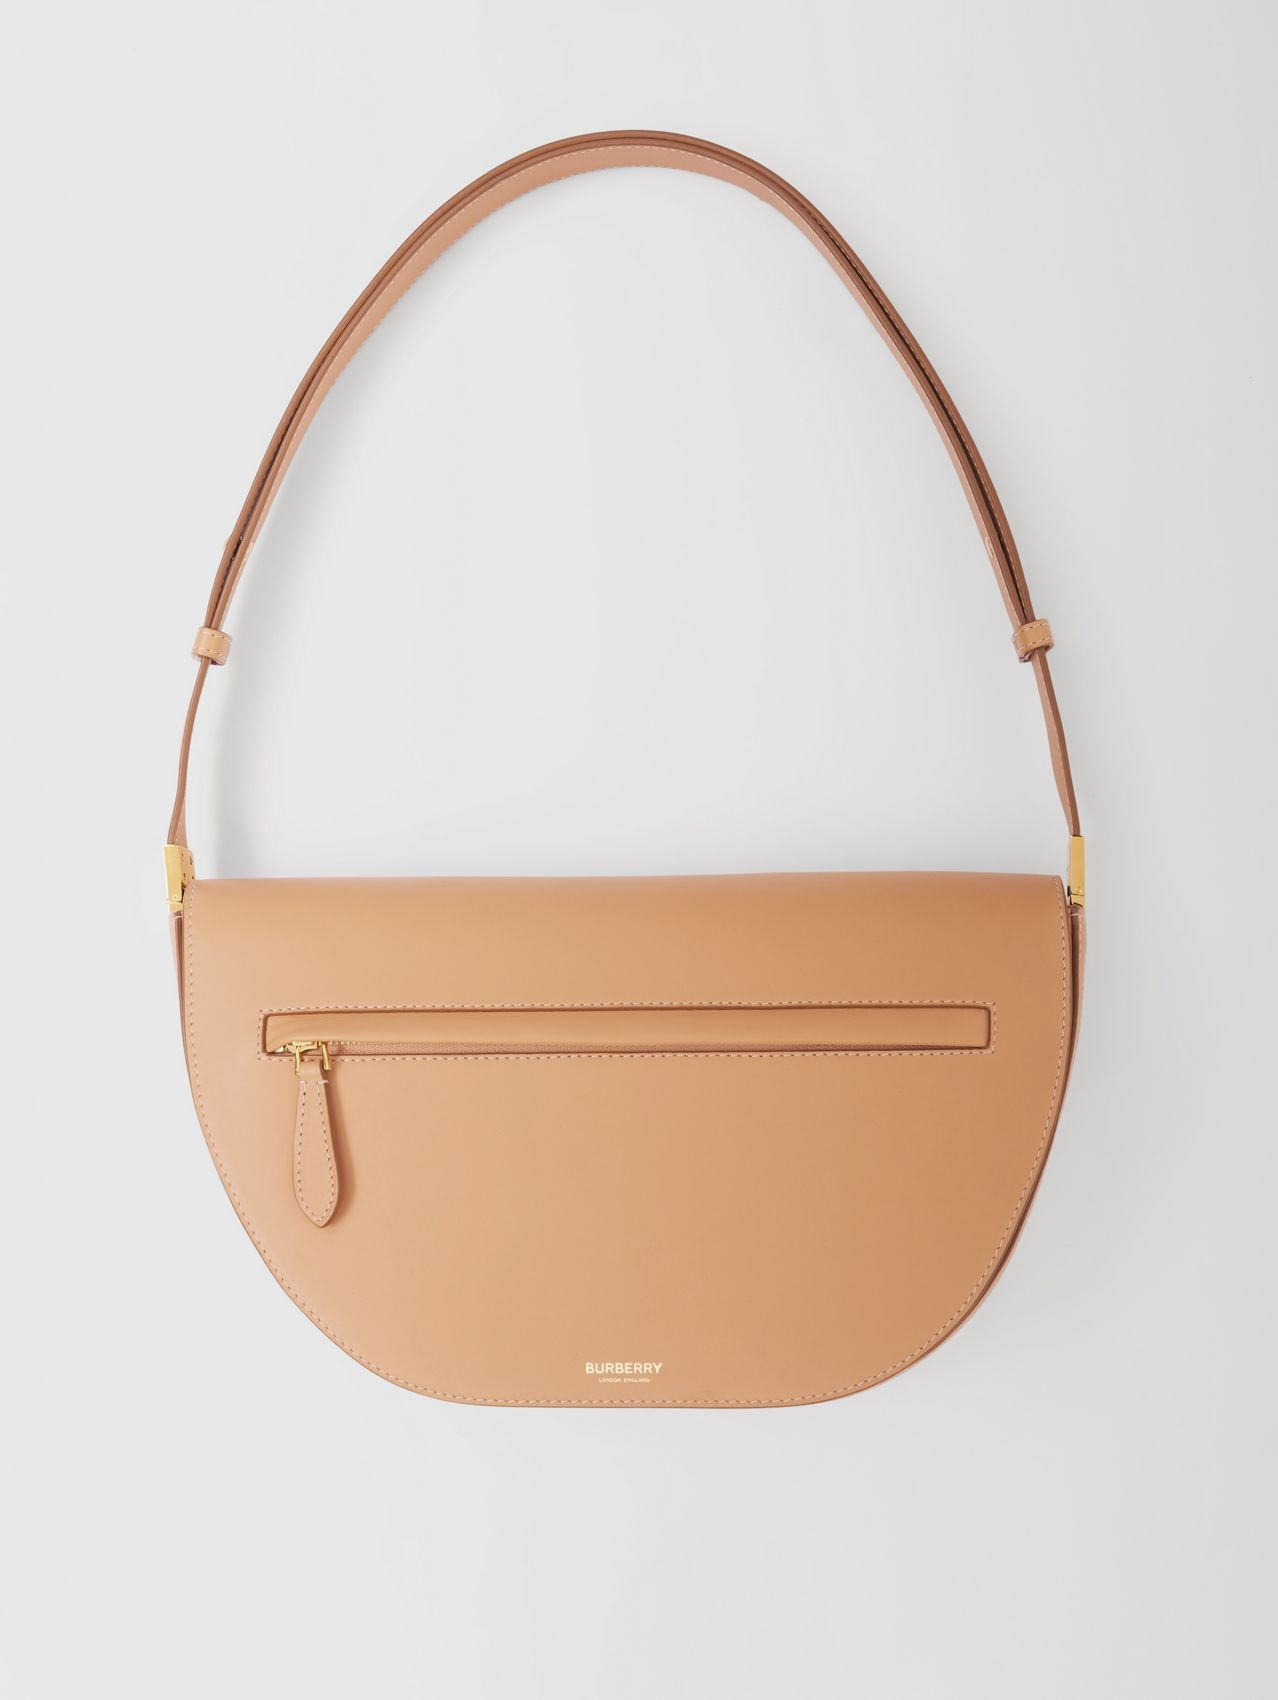 Medium Leather Olympia Bag in Warm Sand